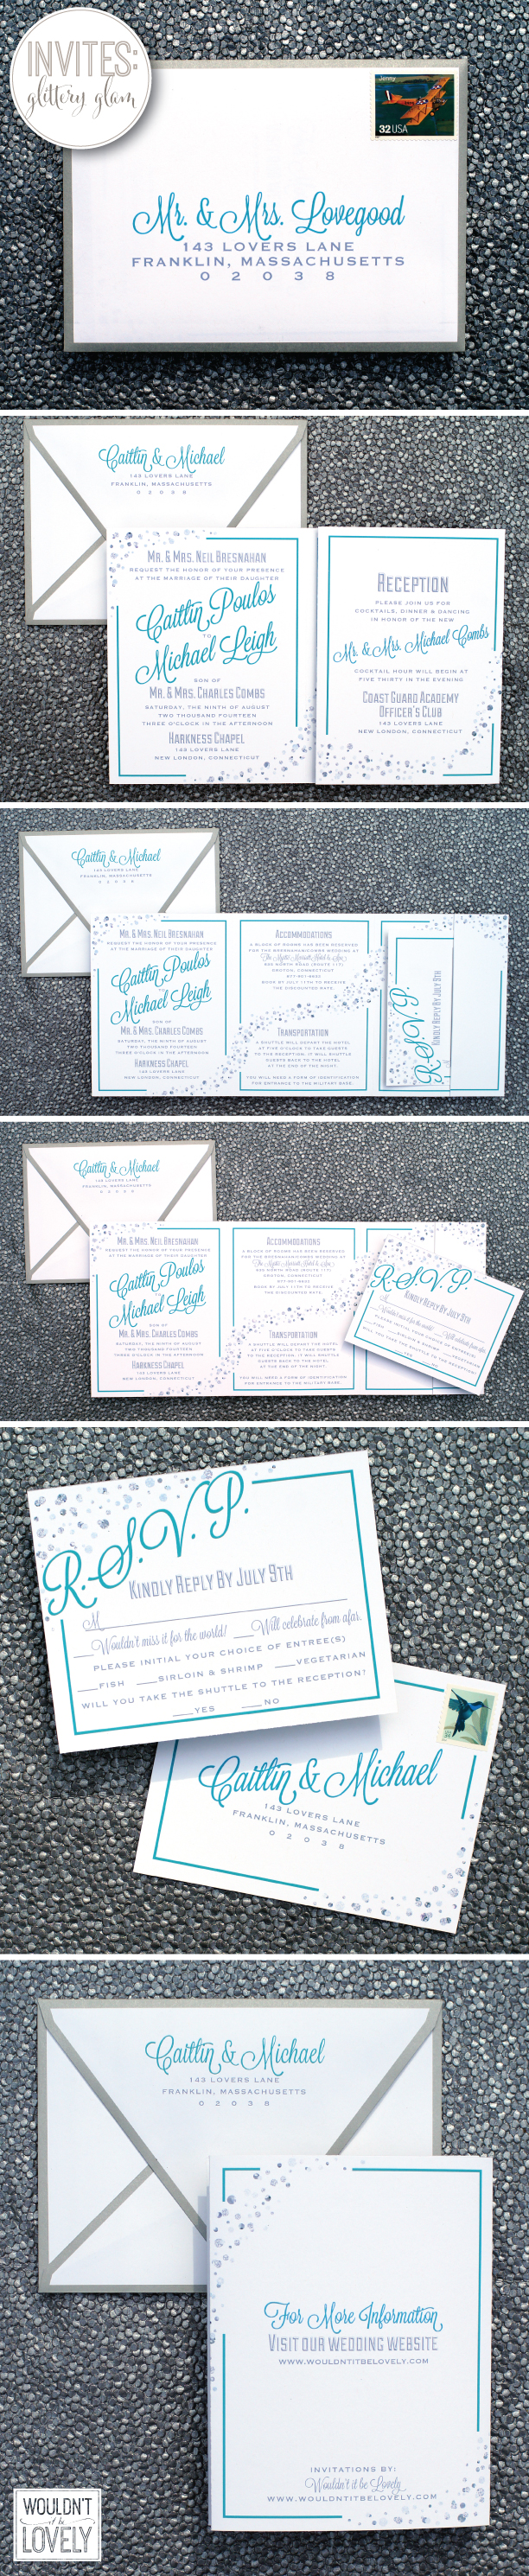 traditional and glam wedding invitation suite custom design